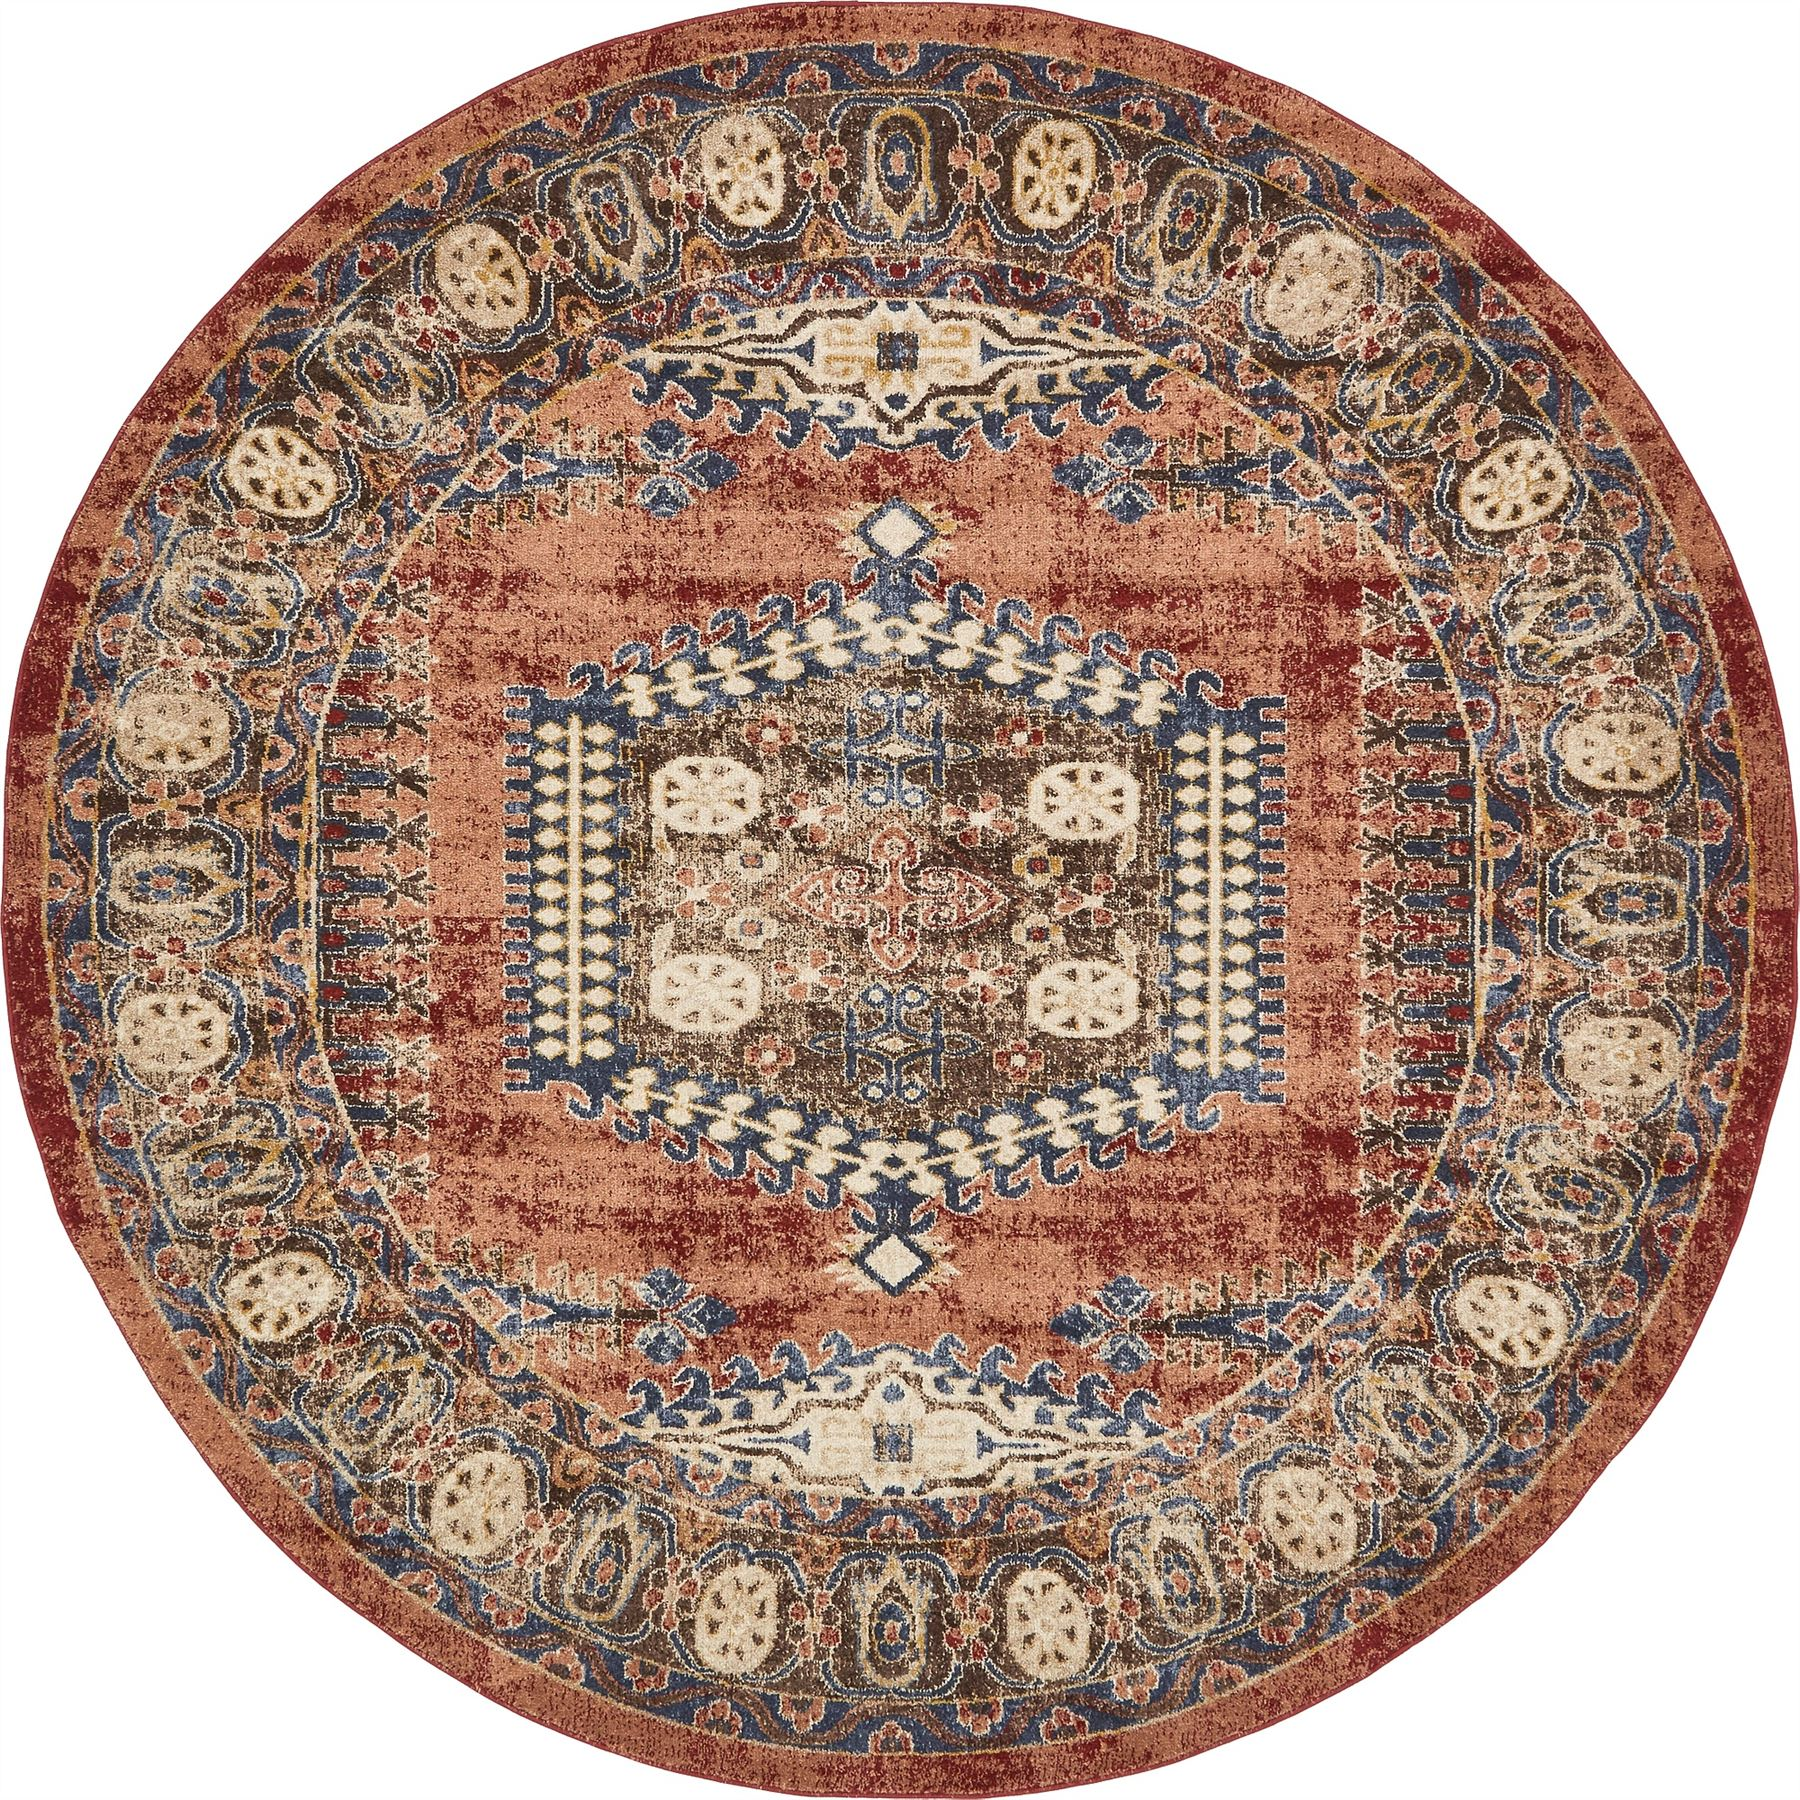 Vintage Looking Area Rugs: Traditional Large Faded Persian Design Area Rug Small